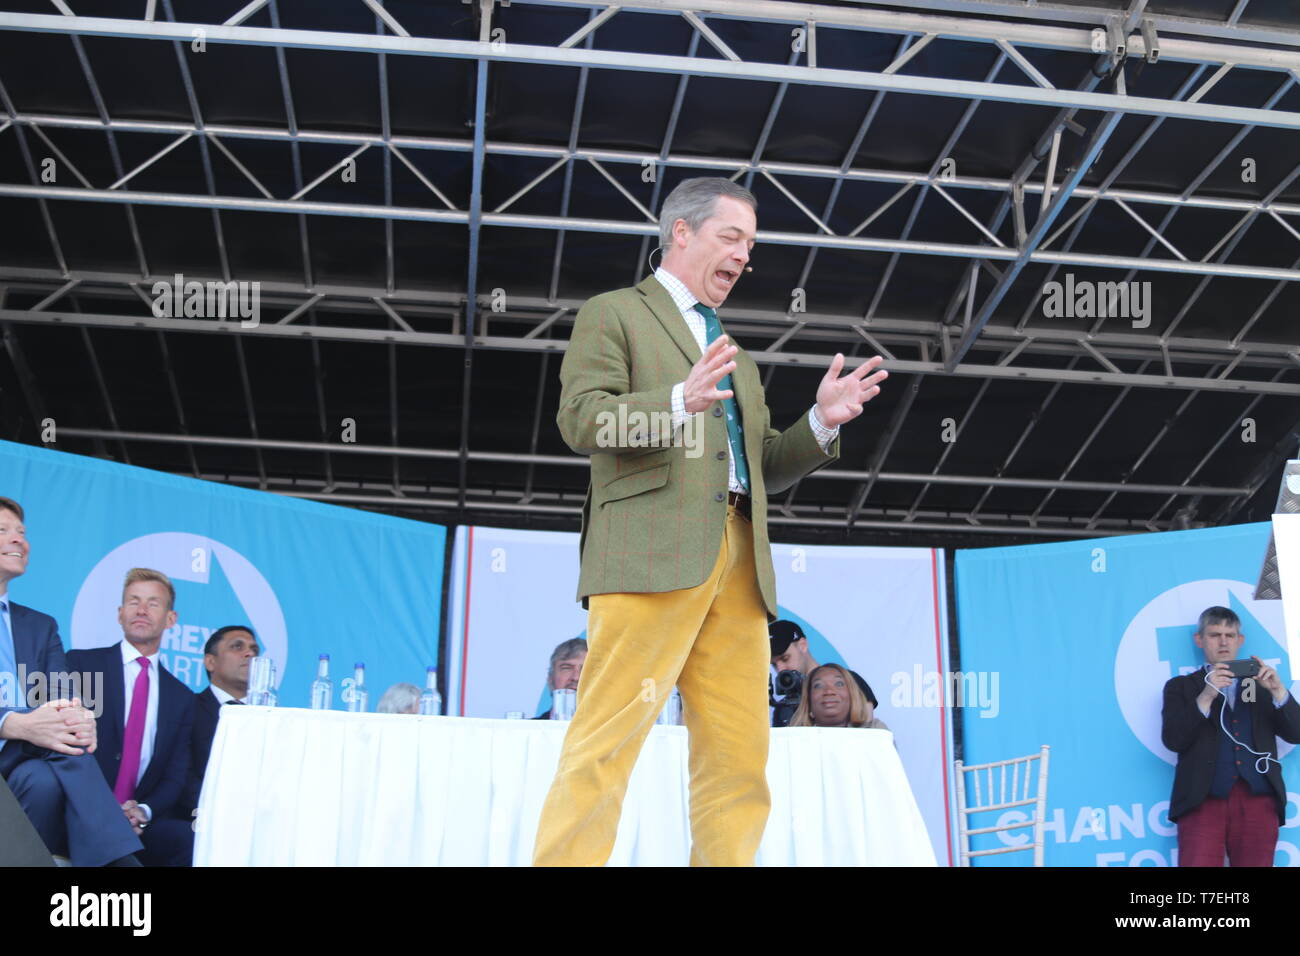 Brexit party leader Nigel Farage speaking in Chester at a Brexit party rally ahead of the European election Stock Photo